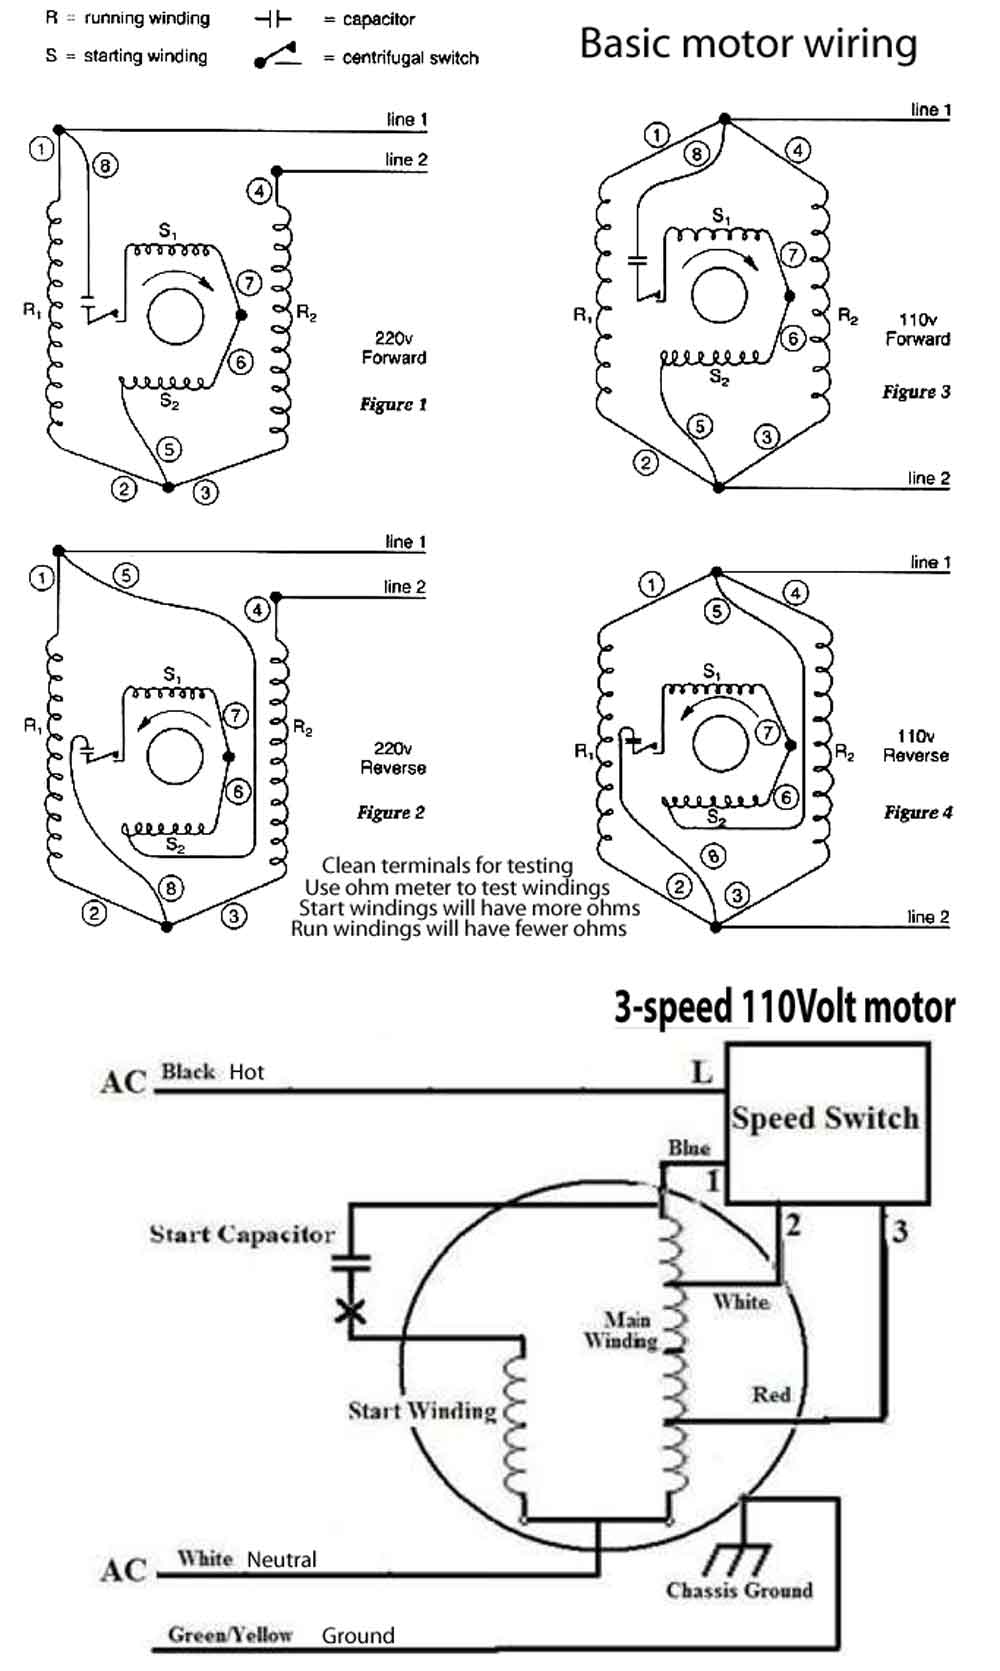 Motor wiring 500 pedestal fan motor wiring diagram how to rewind electric fan motor table fan motor wiring diagram at fashall.co